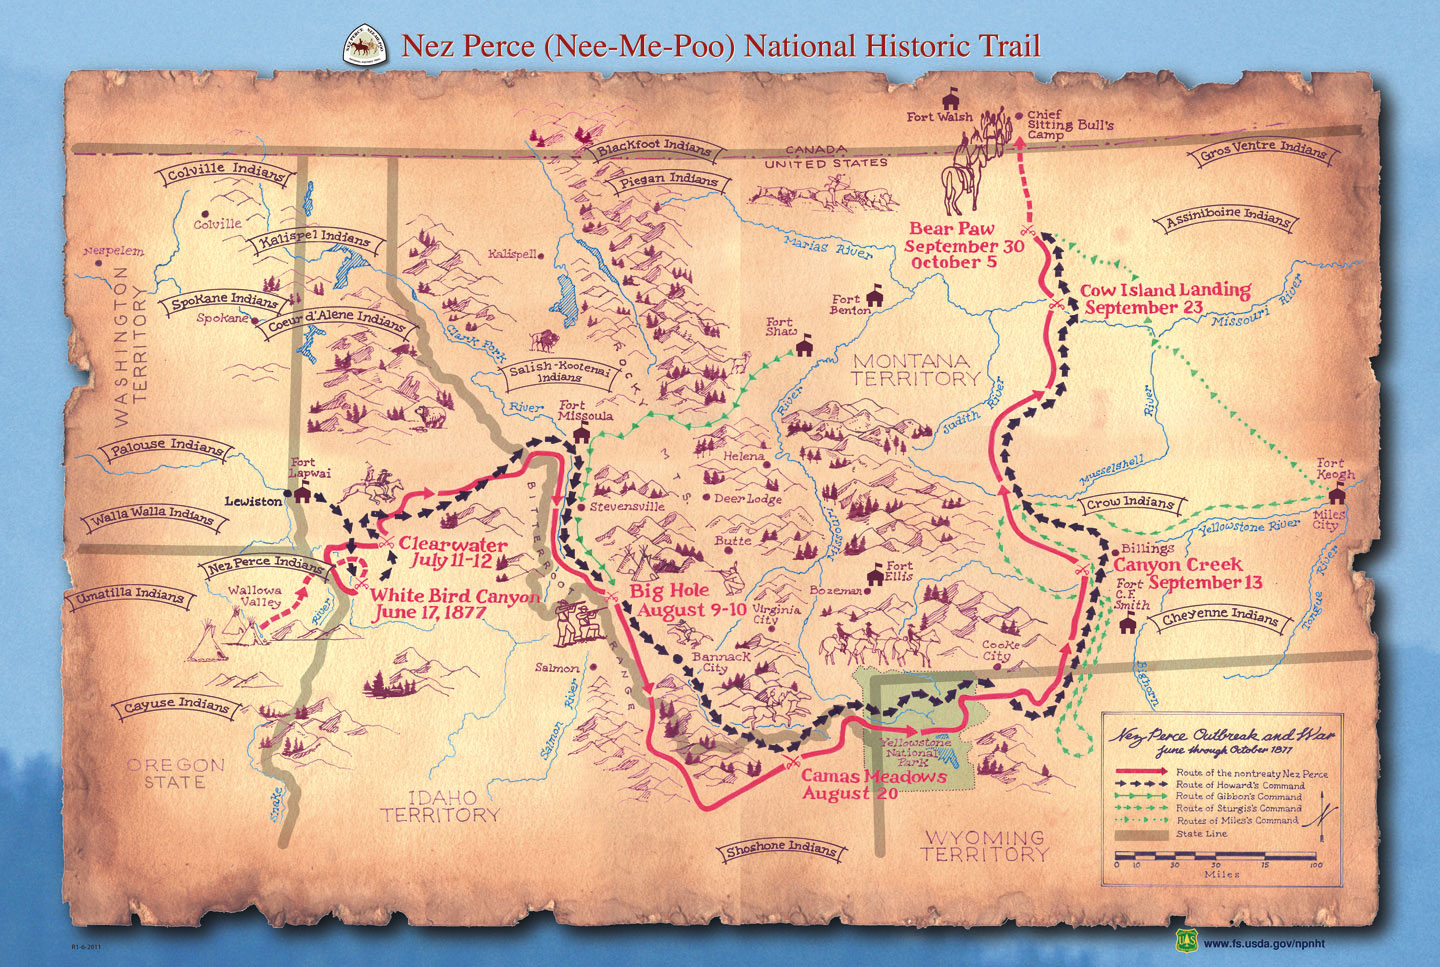 nez perce nee me poo national historic trail us forest service north carolina historical topographic maps jpeg